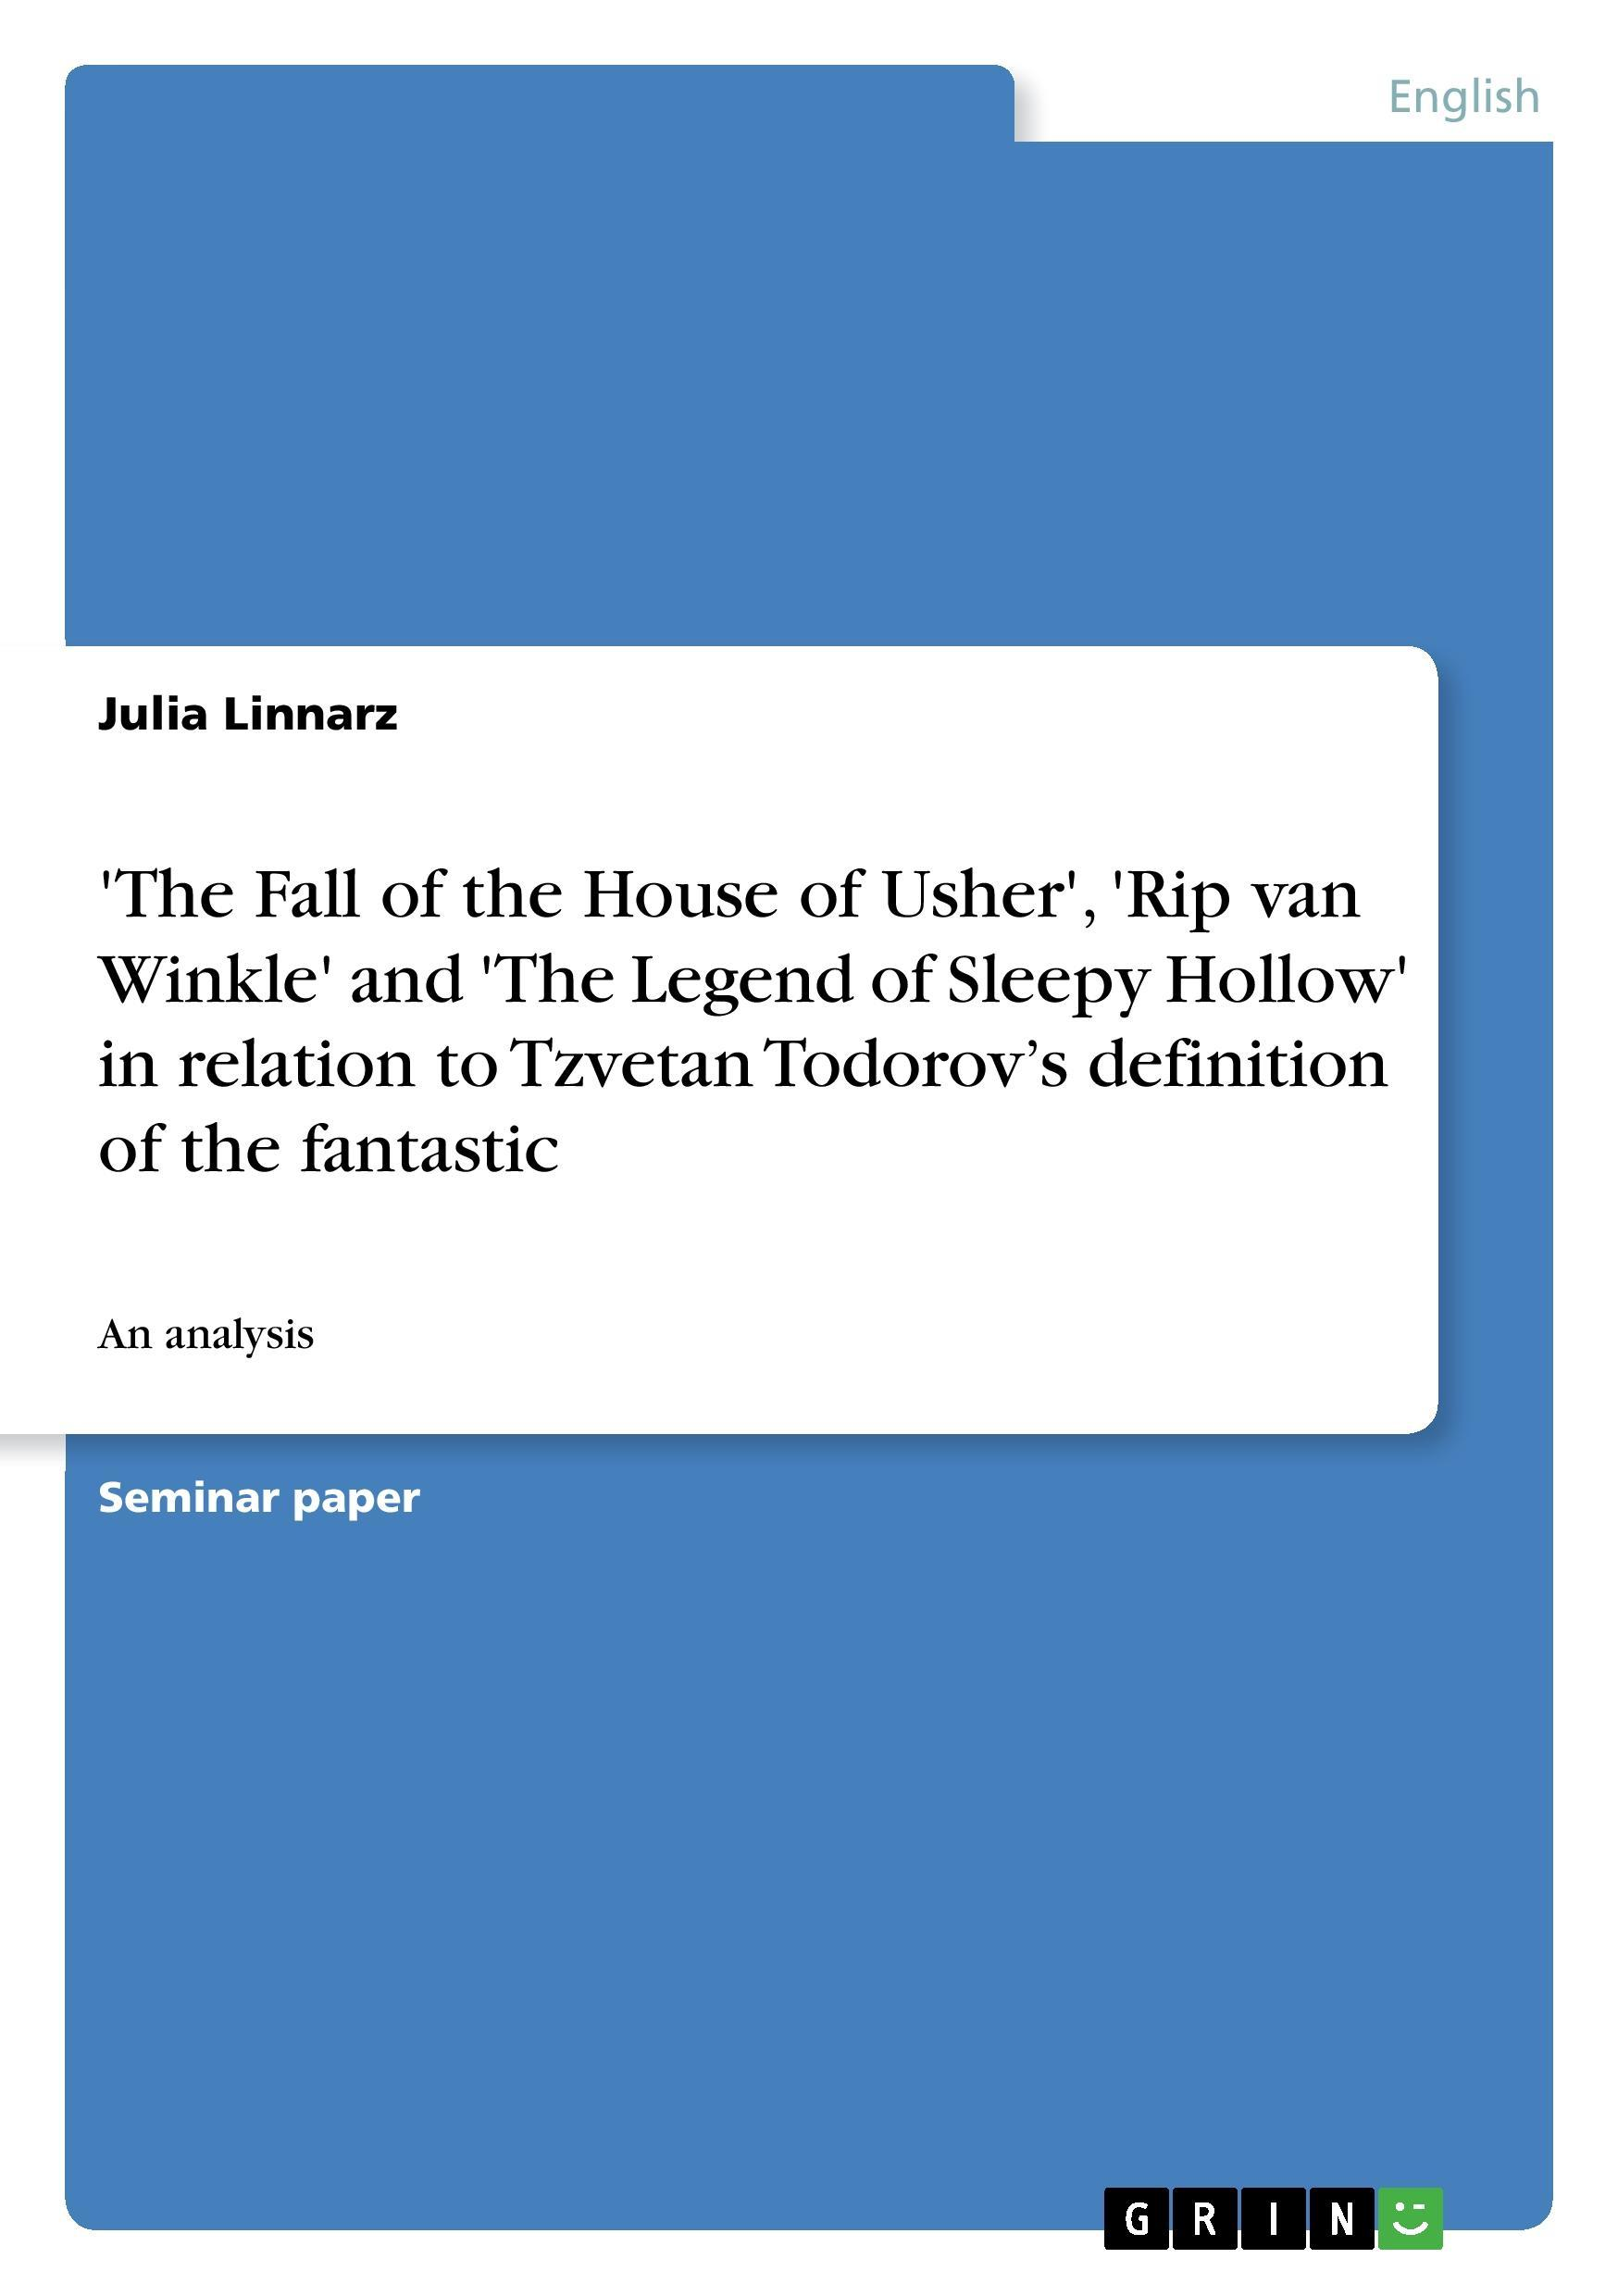 The Fall of the House of Usher ,  Rip van Winkle  and  The Legend of Sleepy Hollow  in relation to Tzvetan Todorov s definition of the fantastic - Linnarz, Julia